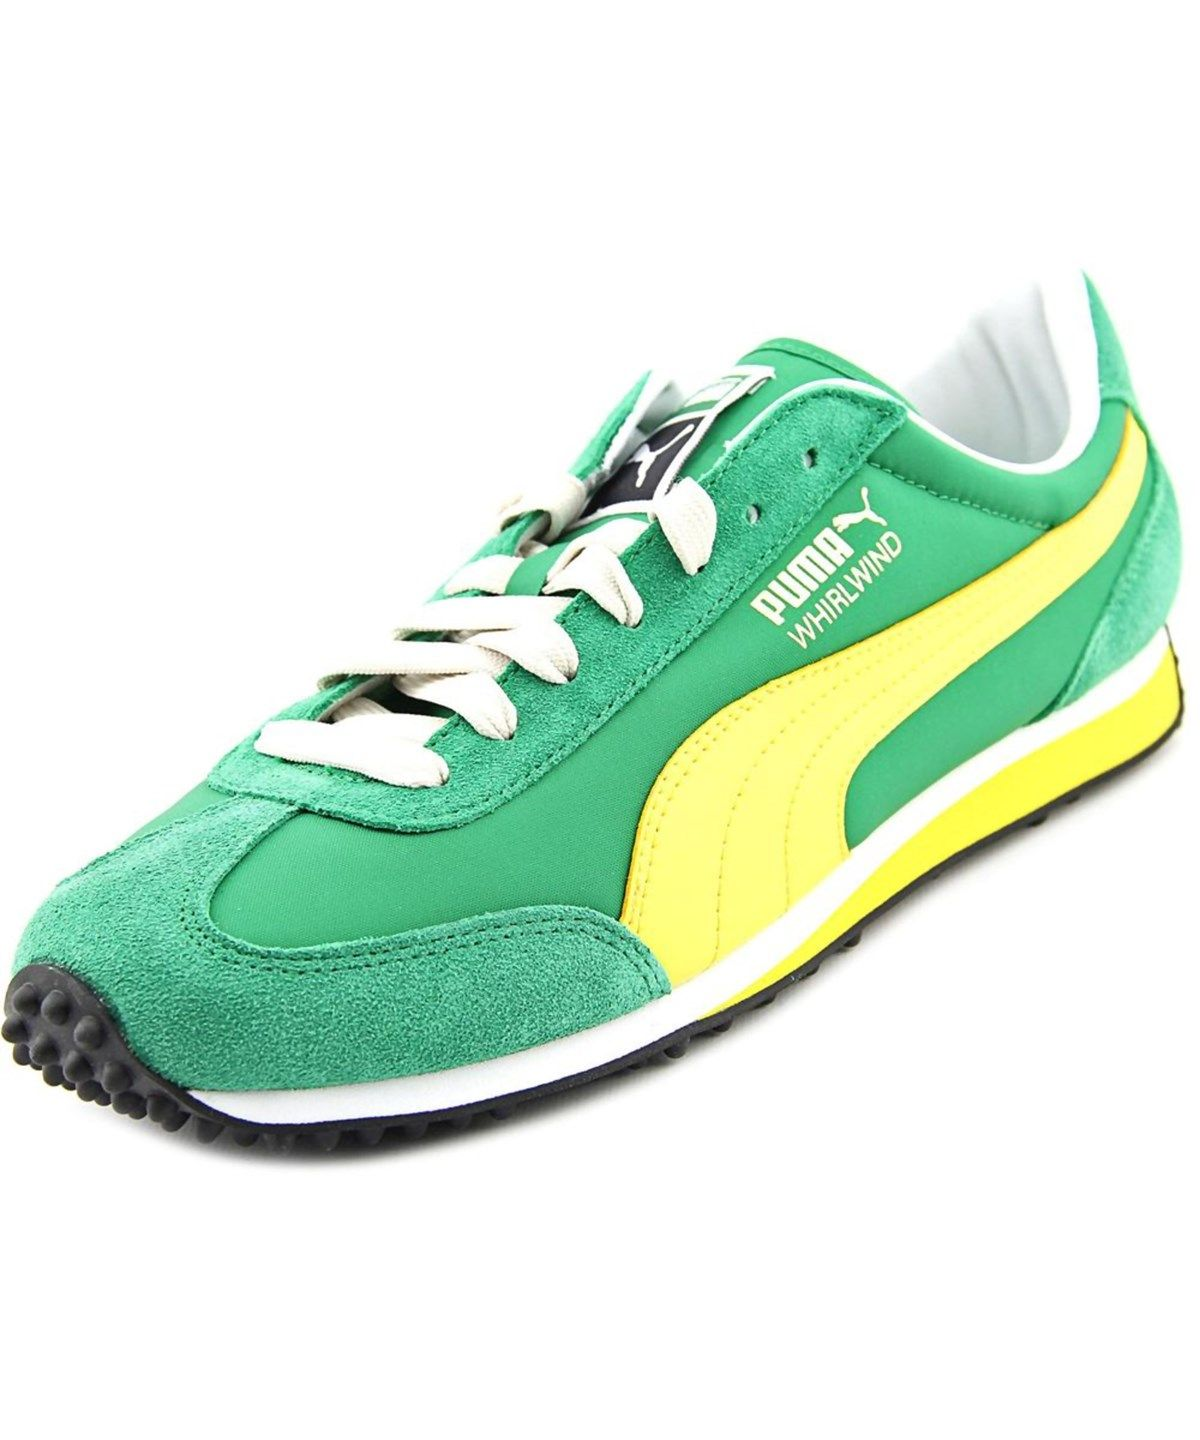 PUMA Puma Whirlwind Classic Men Suede Green Fashion Sneakers .  puma  shoes   sneakers 537f671dd